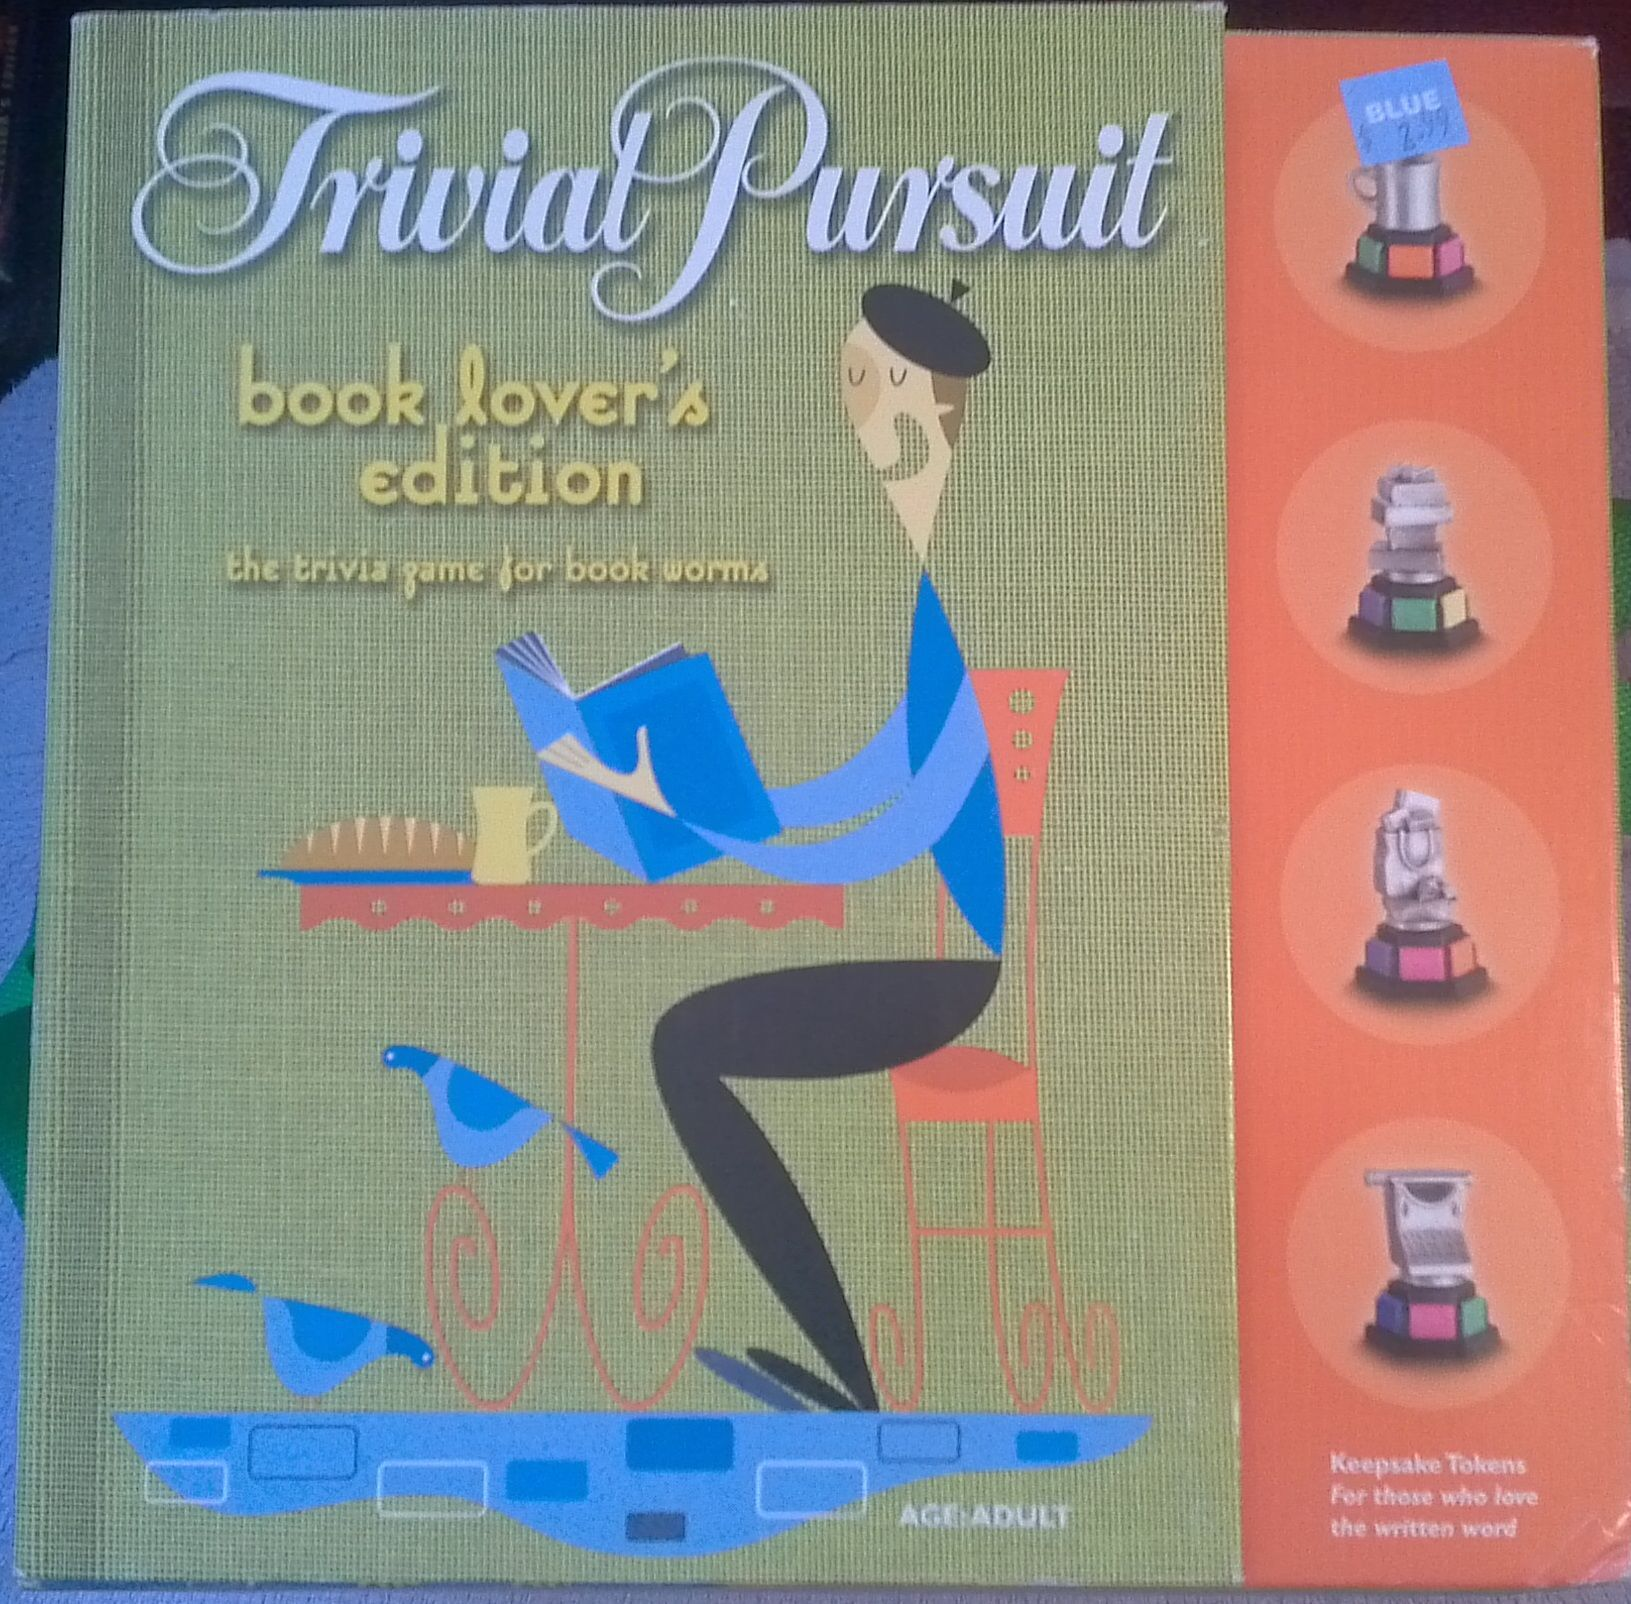 Trivial Pursuit: Book Lover's Edition